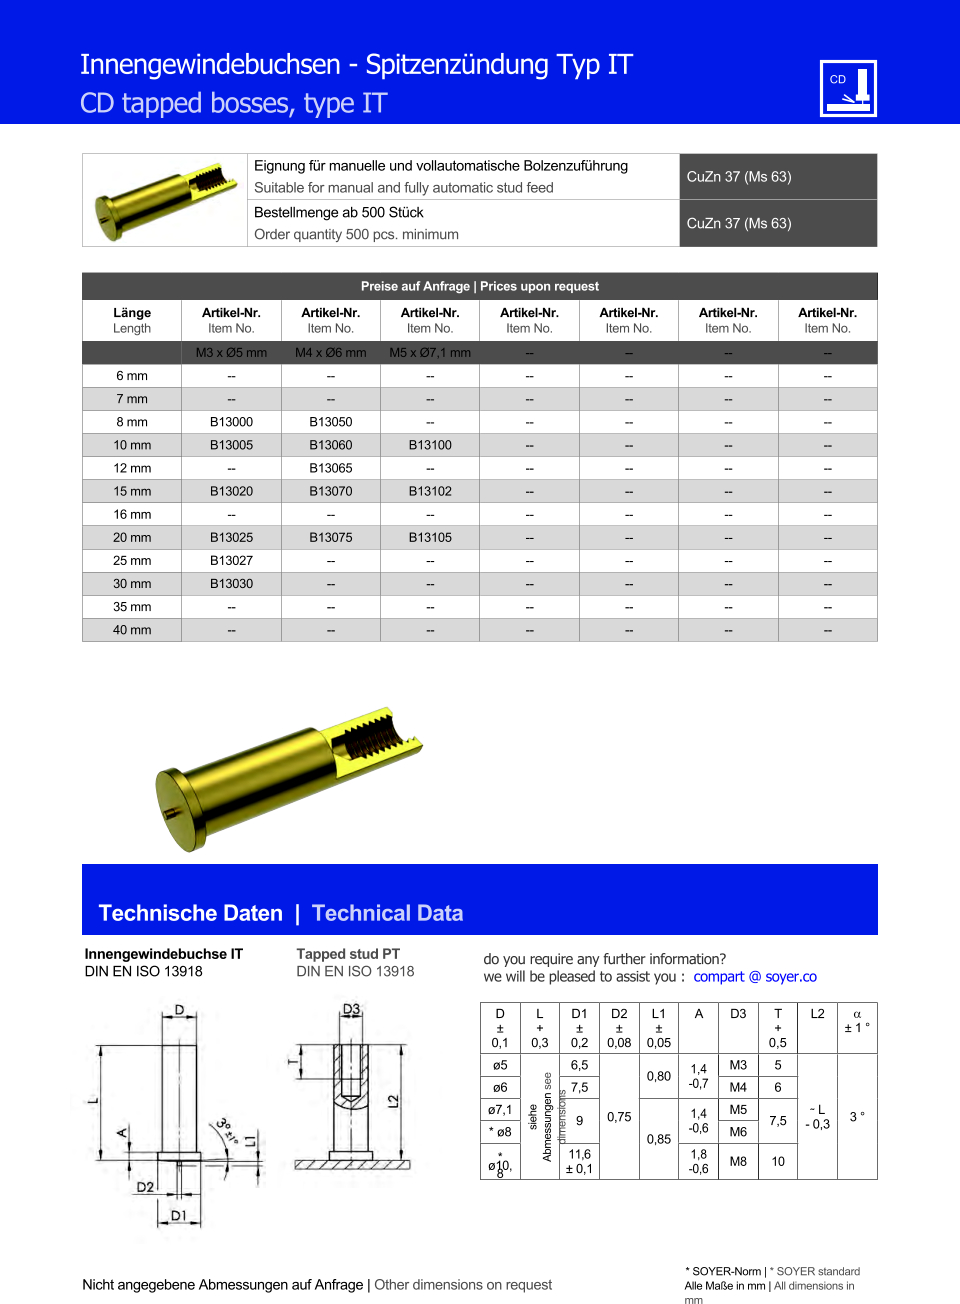 Eignung für manuelle und vollautomatische Bolzenzuführung Suitable for manual and fully automatic stud feed CuZn 37 (Ms 63)  Bestellmenge ab 500 Stück Order quantity 500 pcs. minimum CuZn 37 (Ms 63) Technische Daten  |  Technical Data Nicht angegebene Abmessungen auf Anfrage | Other dimensions on request * SOYER-Norm | * SOYER standard Alle Maße in mm | All dimensions in mm Preise auf Anfrage | Prices upon request  Länge Length Artikel-Nr. Item No. Artikel-Nr. Item No. Artikel-Nr. Item No. Artikel-Nr. Item No. Artikel-Nr. Item No. Artikel-Nr. Item No. Artikel-Nr. Item No. M3 x Ø5 mm M4 x Ø6 mm M5 x Ø7,1 mm 	-- 	-- 	-- 	-- 6 mm 	-- 	-- 	-- 	-- 	-- 	-- 	-- 7 mm 	-- 	-- 	-- 	-- 	-- 	-- 	-- 8 mm 	B13000 	B13050 	-- 	-- 	-- 	-- 	-- 10 mm 	B13005 	B13060 B13100 	-- 	-- 	-- 	-- 12 mm -- 	B13065 -- 	-- 	-- 	-- 	-- 15 mm B13020 	B13070 B13102 	-- 	-- 	-- 	-- 16 mm -- -- -- 	-- 	-- 	-- 	-- 20 mm 	B13025 B13075 B13105 	-- 	-- 	-- 	-- 25 mm 	B13027 	-- 	-- 	-- 	-- 	-- 	-- 30 mm 	B13030 	-- 	-- 	-- 	-- 	-- 	-- 35 mm 	-- 	-- 	-- 	-- 	-- 	-- 	-- 40 mm 	-- 	-- 	-- 	-- 	-- 	-- 	-- Innengewindebuchsen - Spitzenzündung Typ IT CD tapped bosses, type IT Innengewindebuchse IT DIN EN ISO 13918 Tapped stud PT DIN EN ISO 13918 D ± 0,1 L + 0,3 D1 ± 0,2 D2 ± 0,08 L1 ± 0,05 A D3 	T + 0,5 L2  ± 1 ° ø5 siehe Abmessungen see dimensions 6,5 0,75 0,80 1,4 -0,7 M3 5 ˜ L - 0,3 3 ° ø6 7,5 M4 6  ø7,1 9 0,85 1,4 -0,6 M5 7,5 * ø8 M6 * ø10,8 11,6 ± 0,1 1,8 -0,6 M8 10 do you require any further information?  we will be pleased to assist you :  compart @ soyer.co